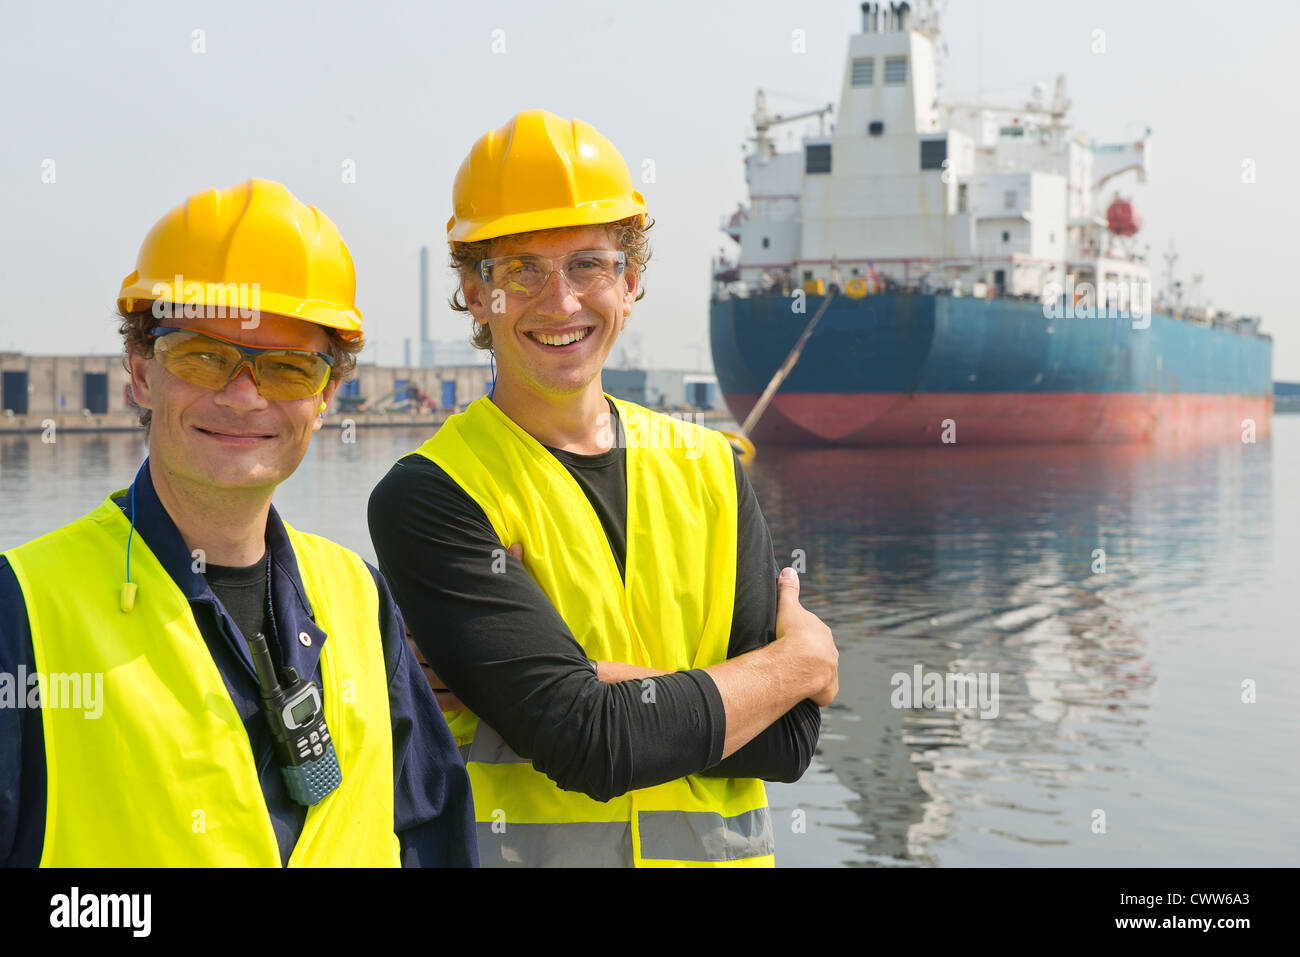 Happy, smiling dockers posing in front of a large industrial oil tanker - Stock Image